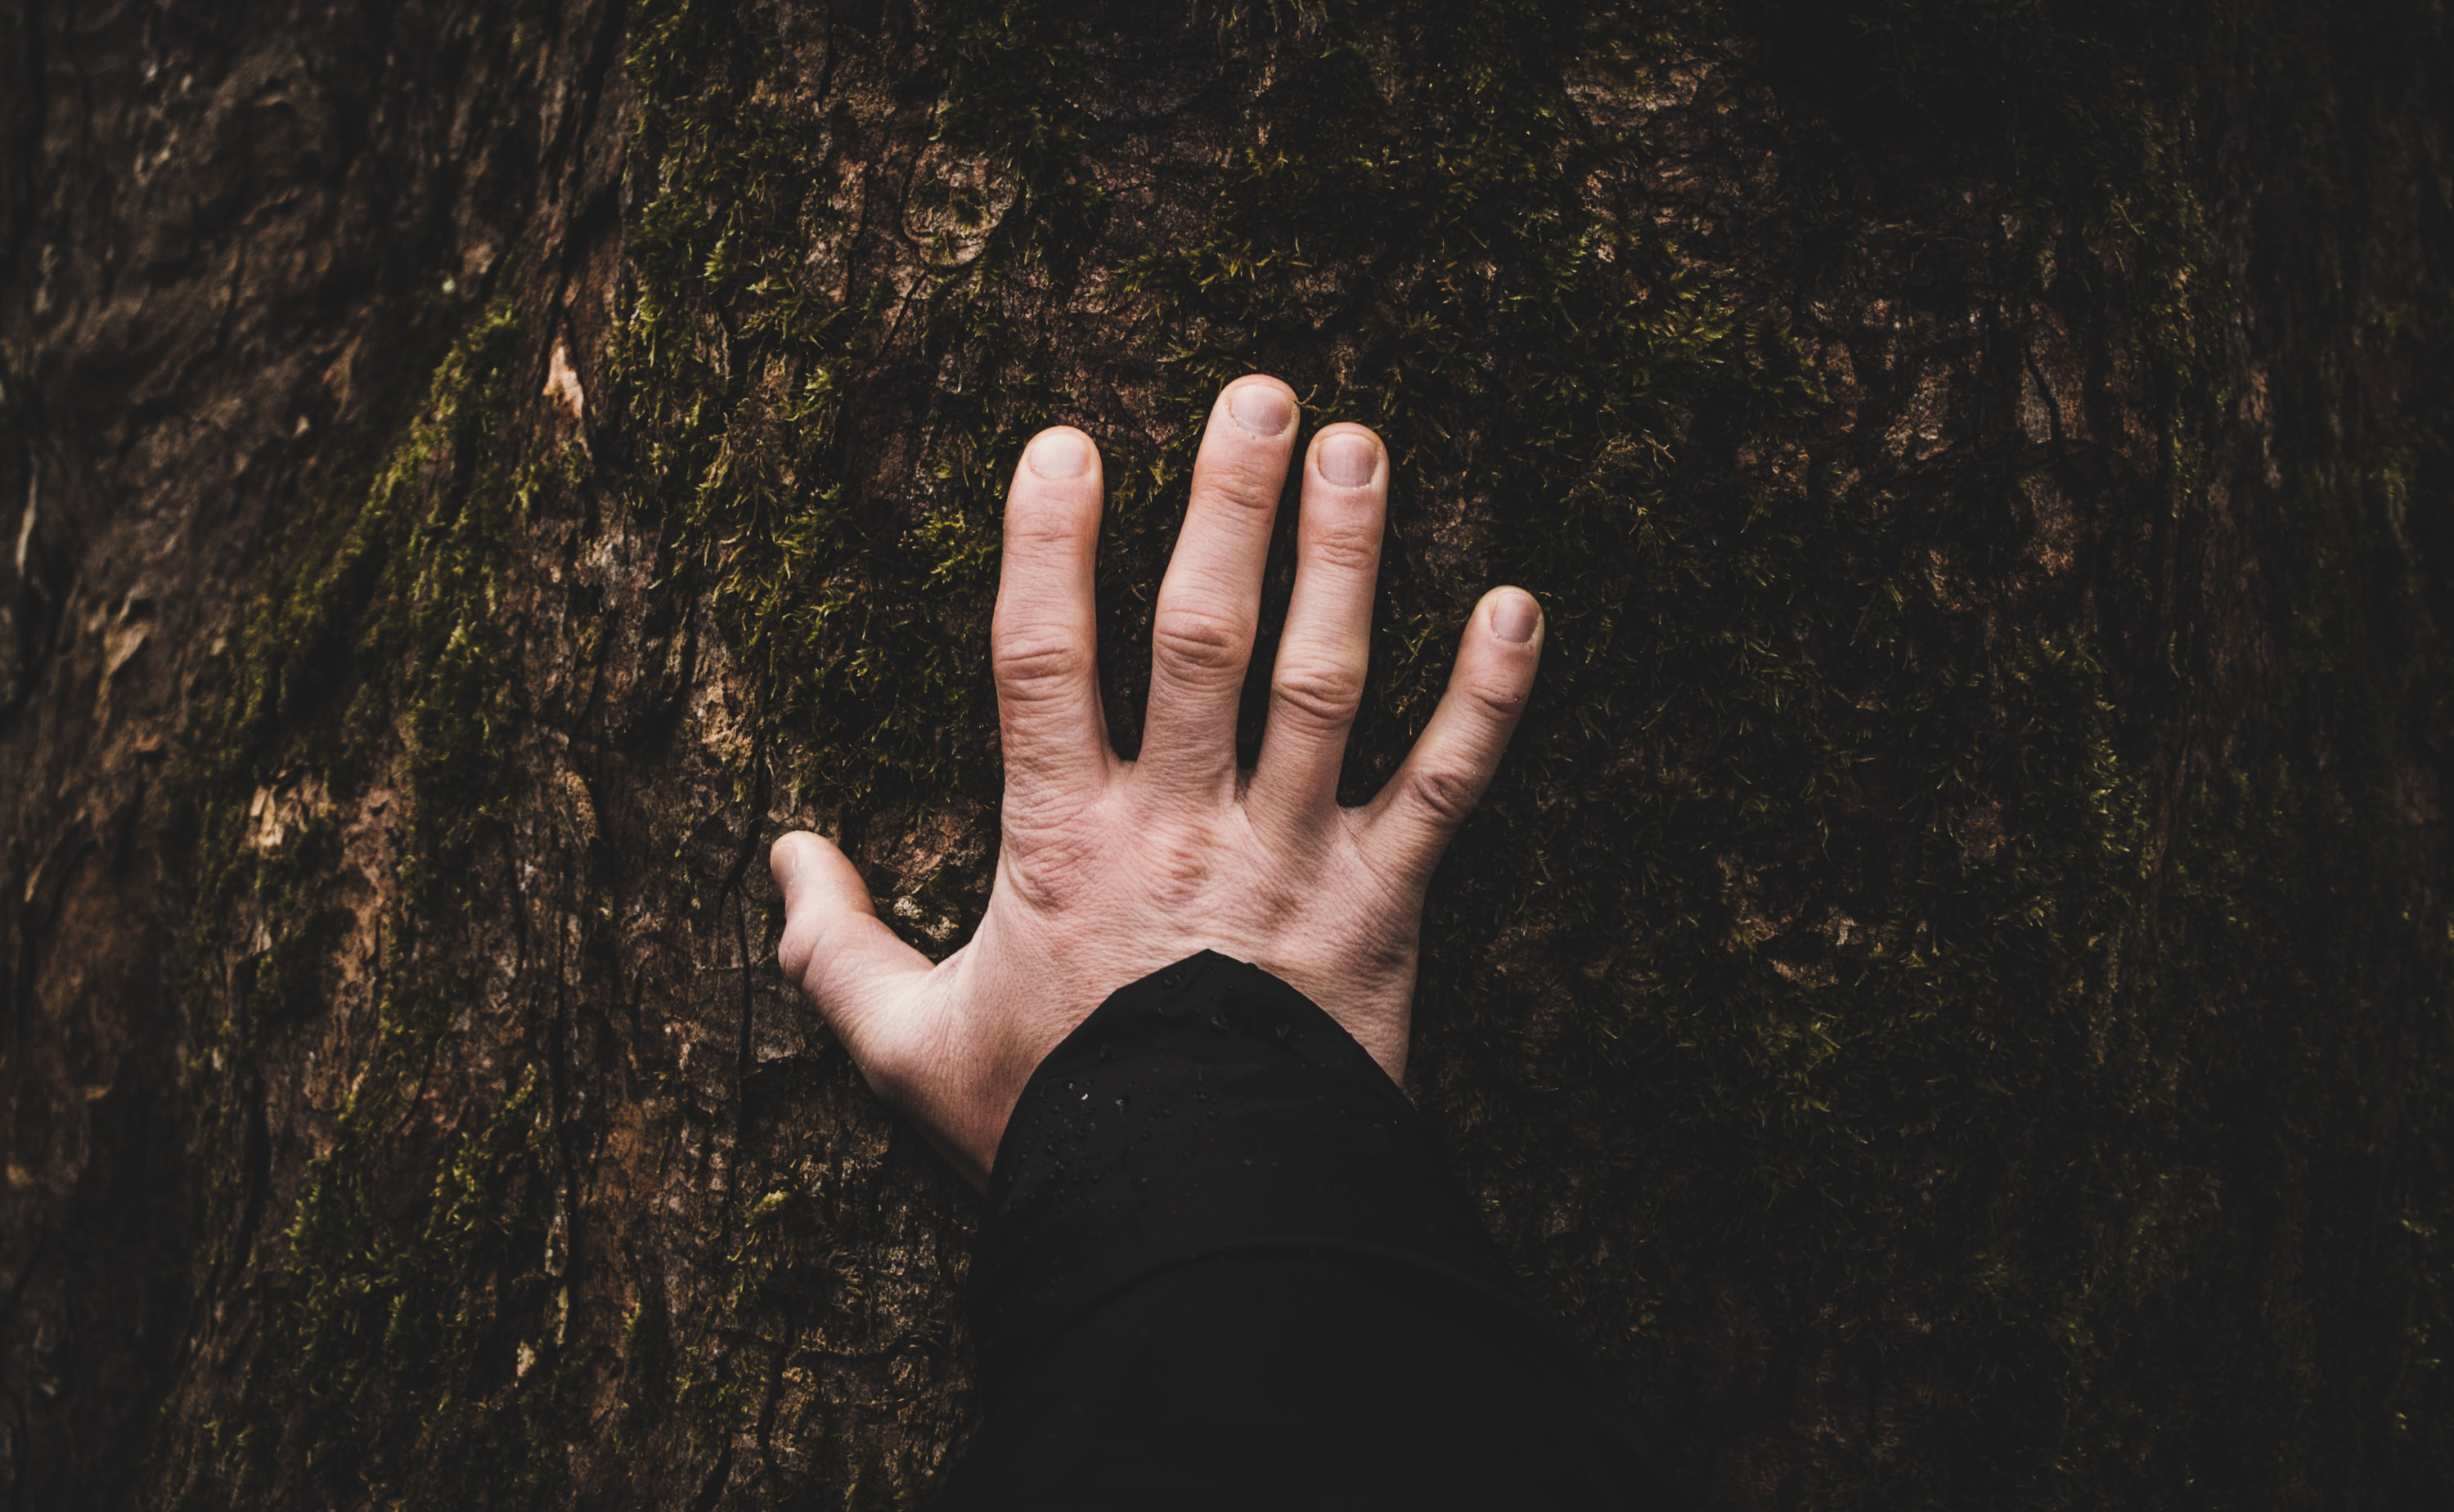 The author added a photo of a man's hand which is placed on the bark of a tree